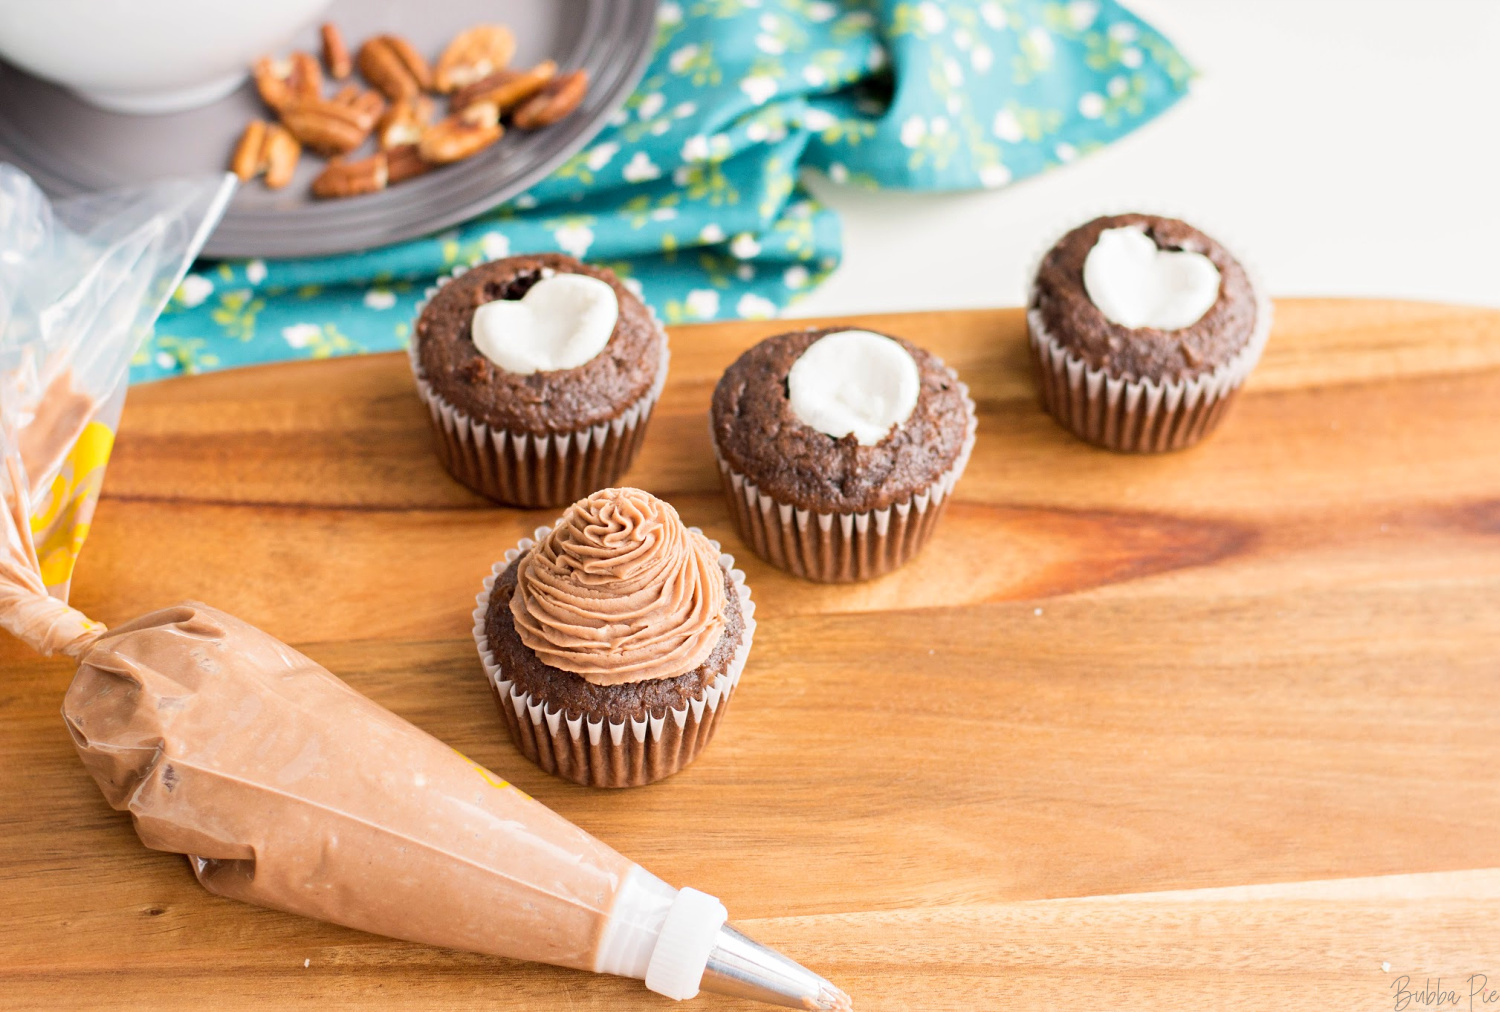 Rocky Road Cupcakes have you put a large marshmallow into the center of your cupcakes